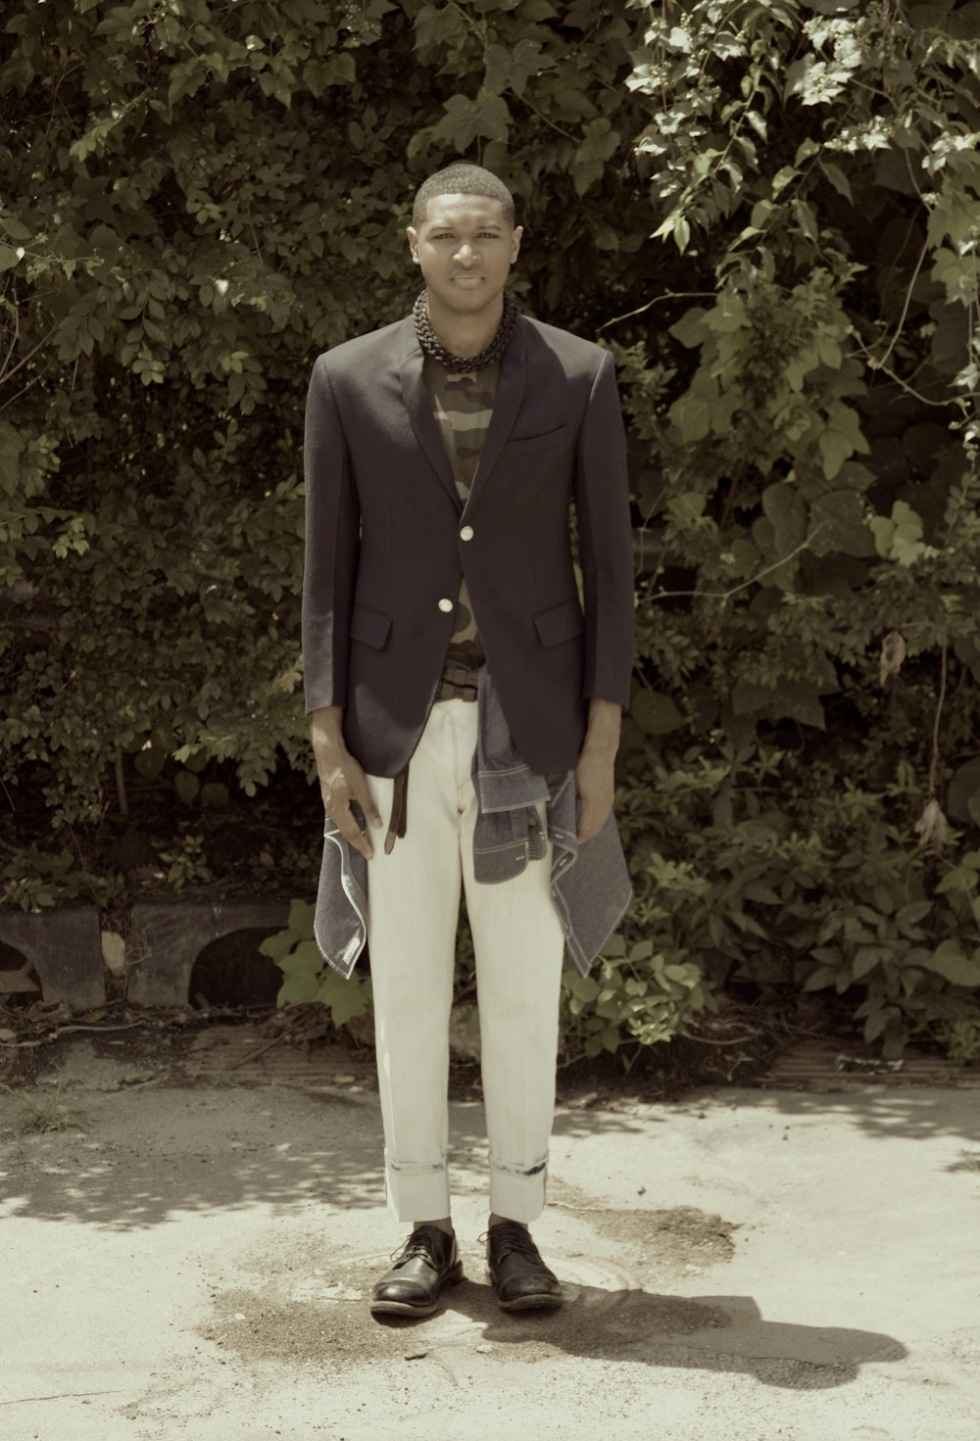 Cotte D'Armes by Clarence Ruth is a high end unique denim based company. The styling is the final focus, snapped outdoors, modern outfits, they know whats in trends and they propose new concepts and ideas.